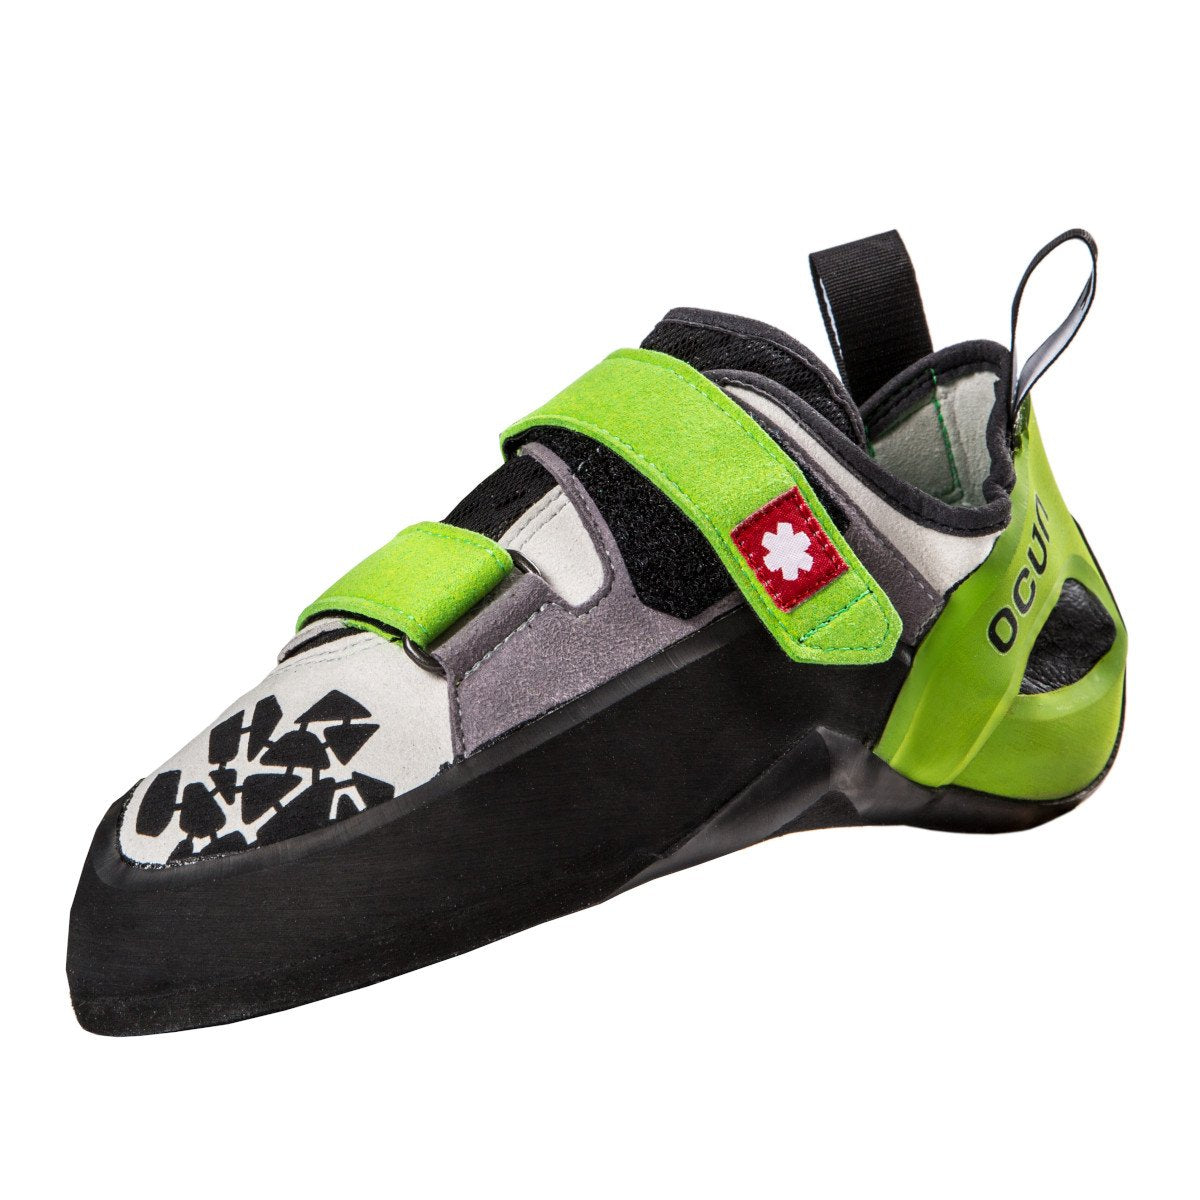 Ocun Jett QC climbing shoe, in black, grey and white colours with green straps